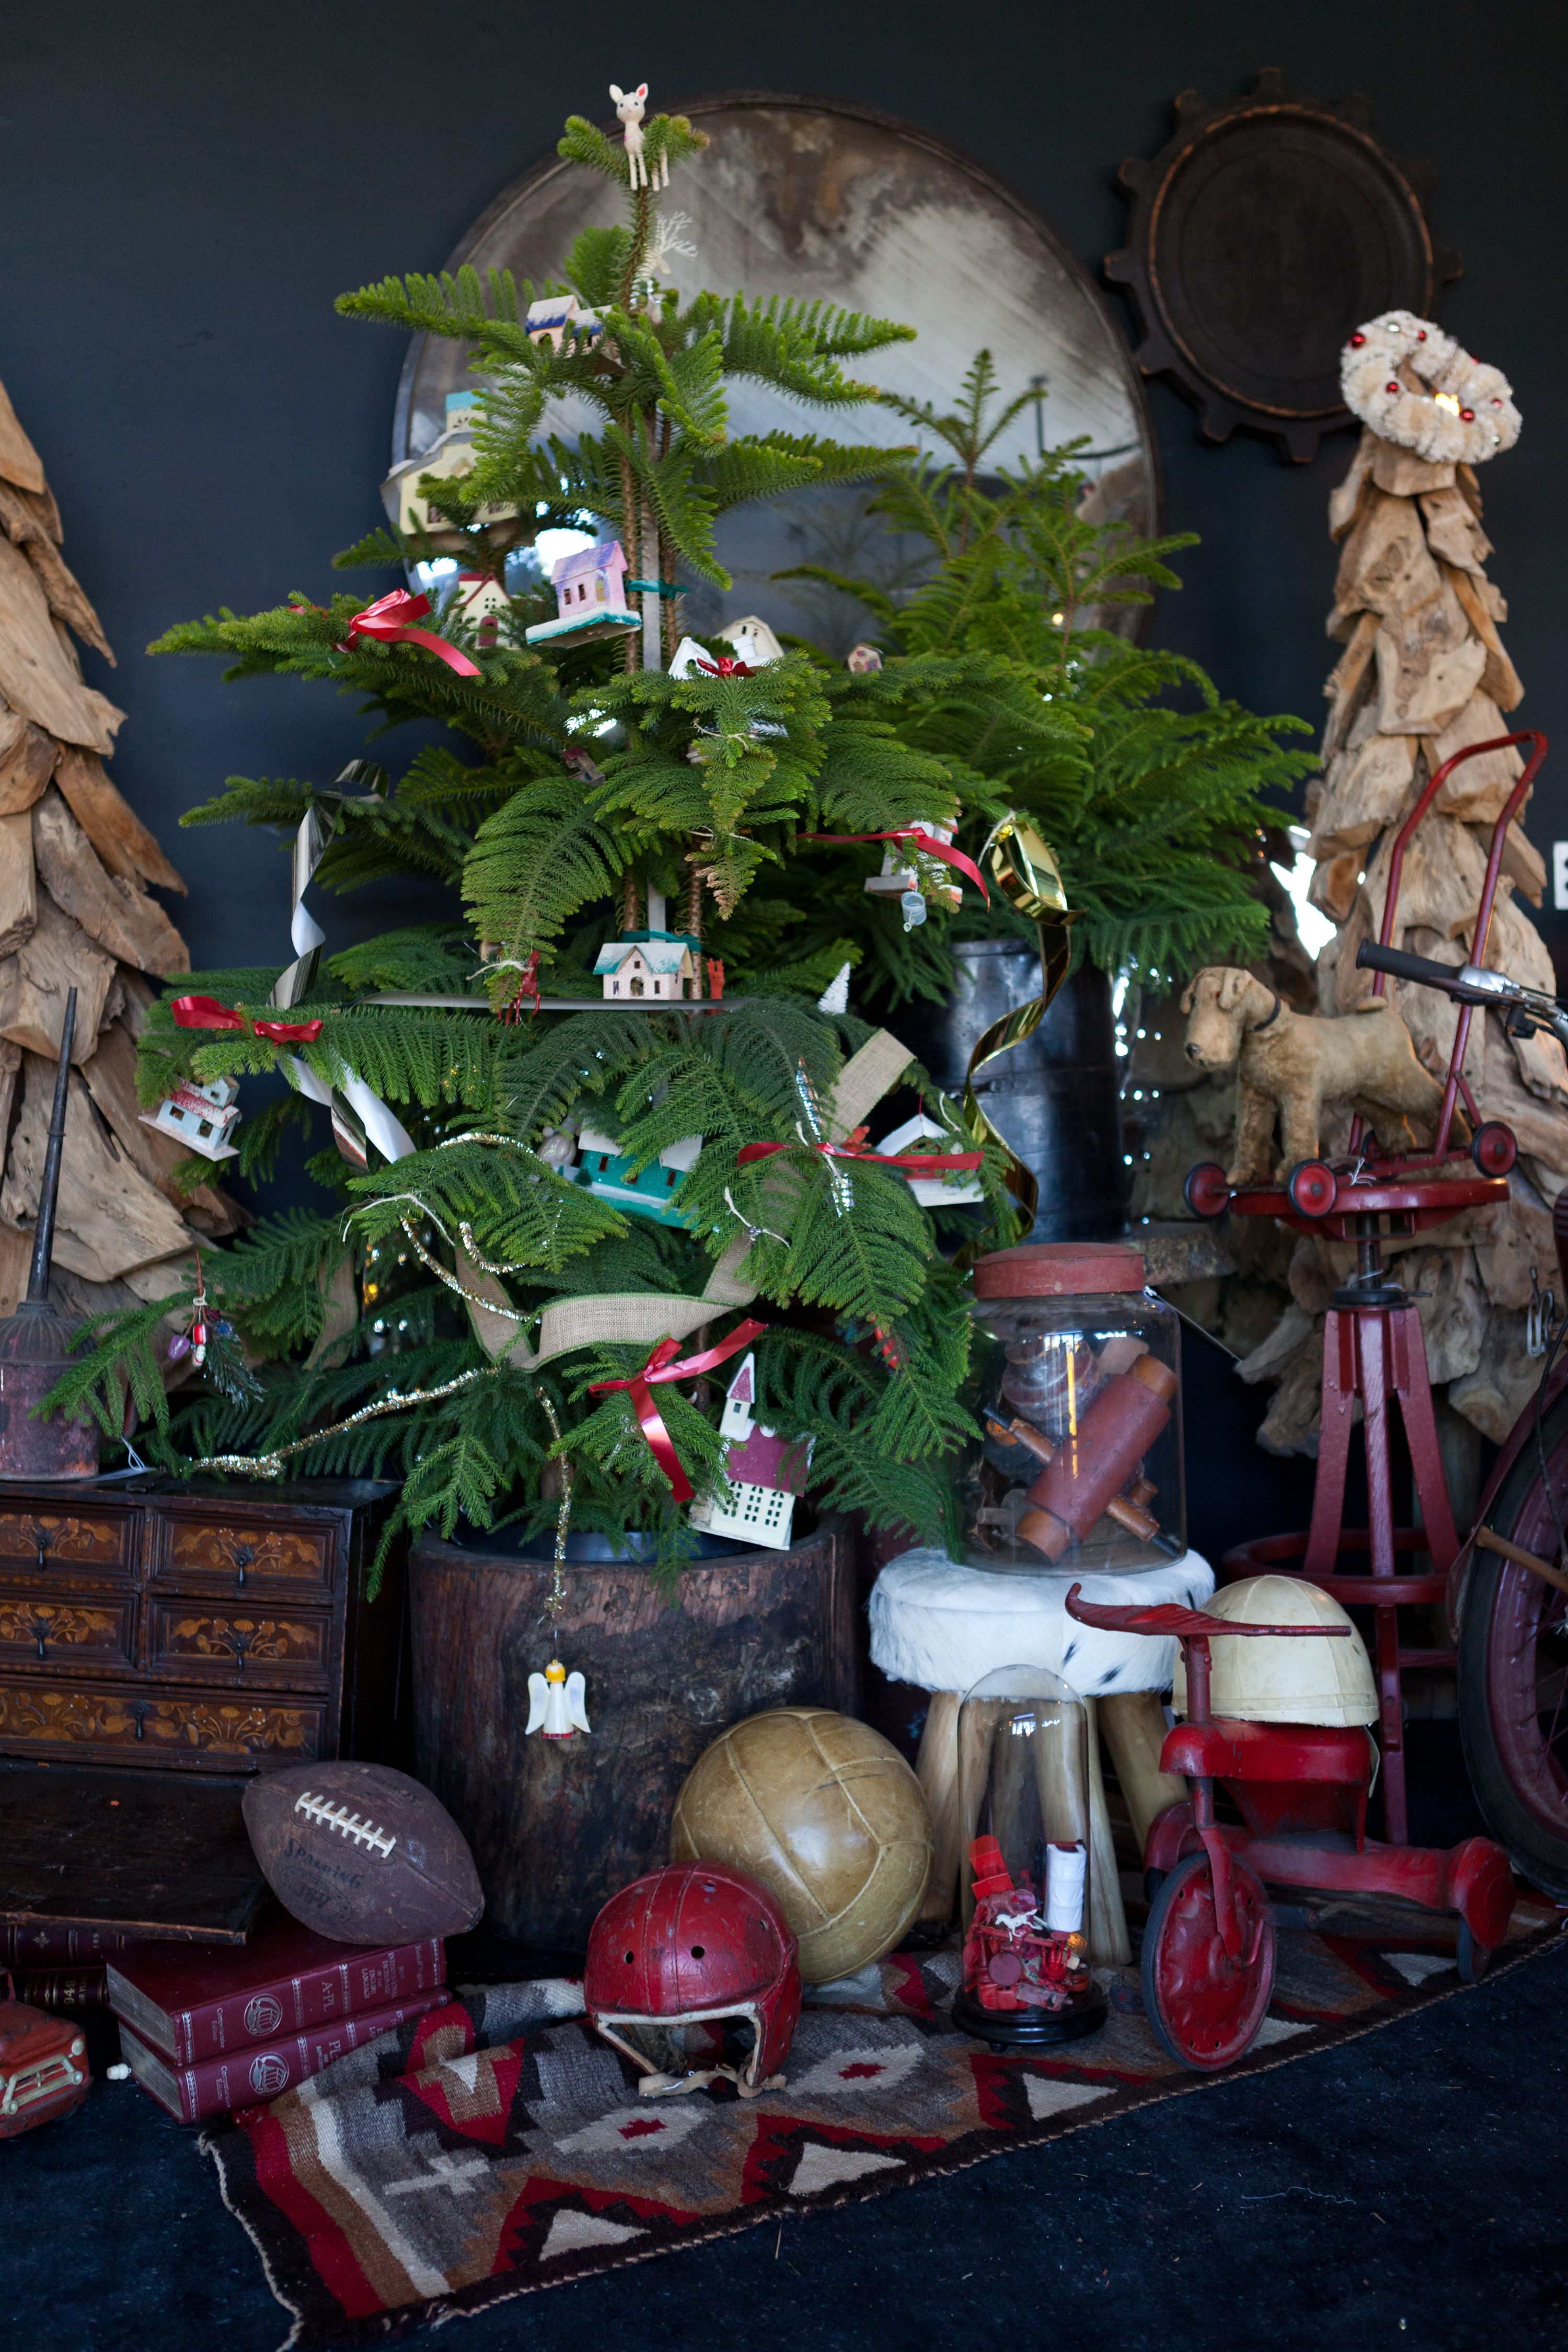 Decked for the holiday in organic Christmas cheer. Evergreen, antiques and one-of-a-kind gifts under the tree. http://www.bdantiques.com/